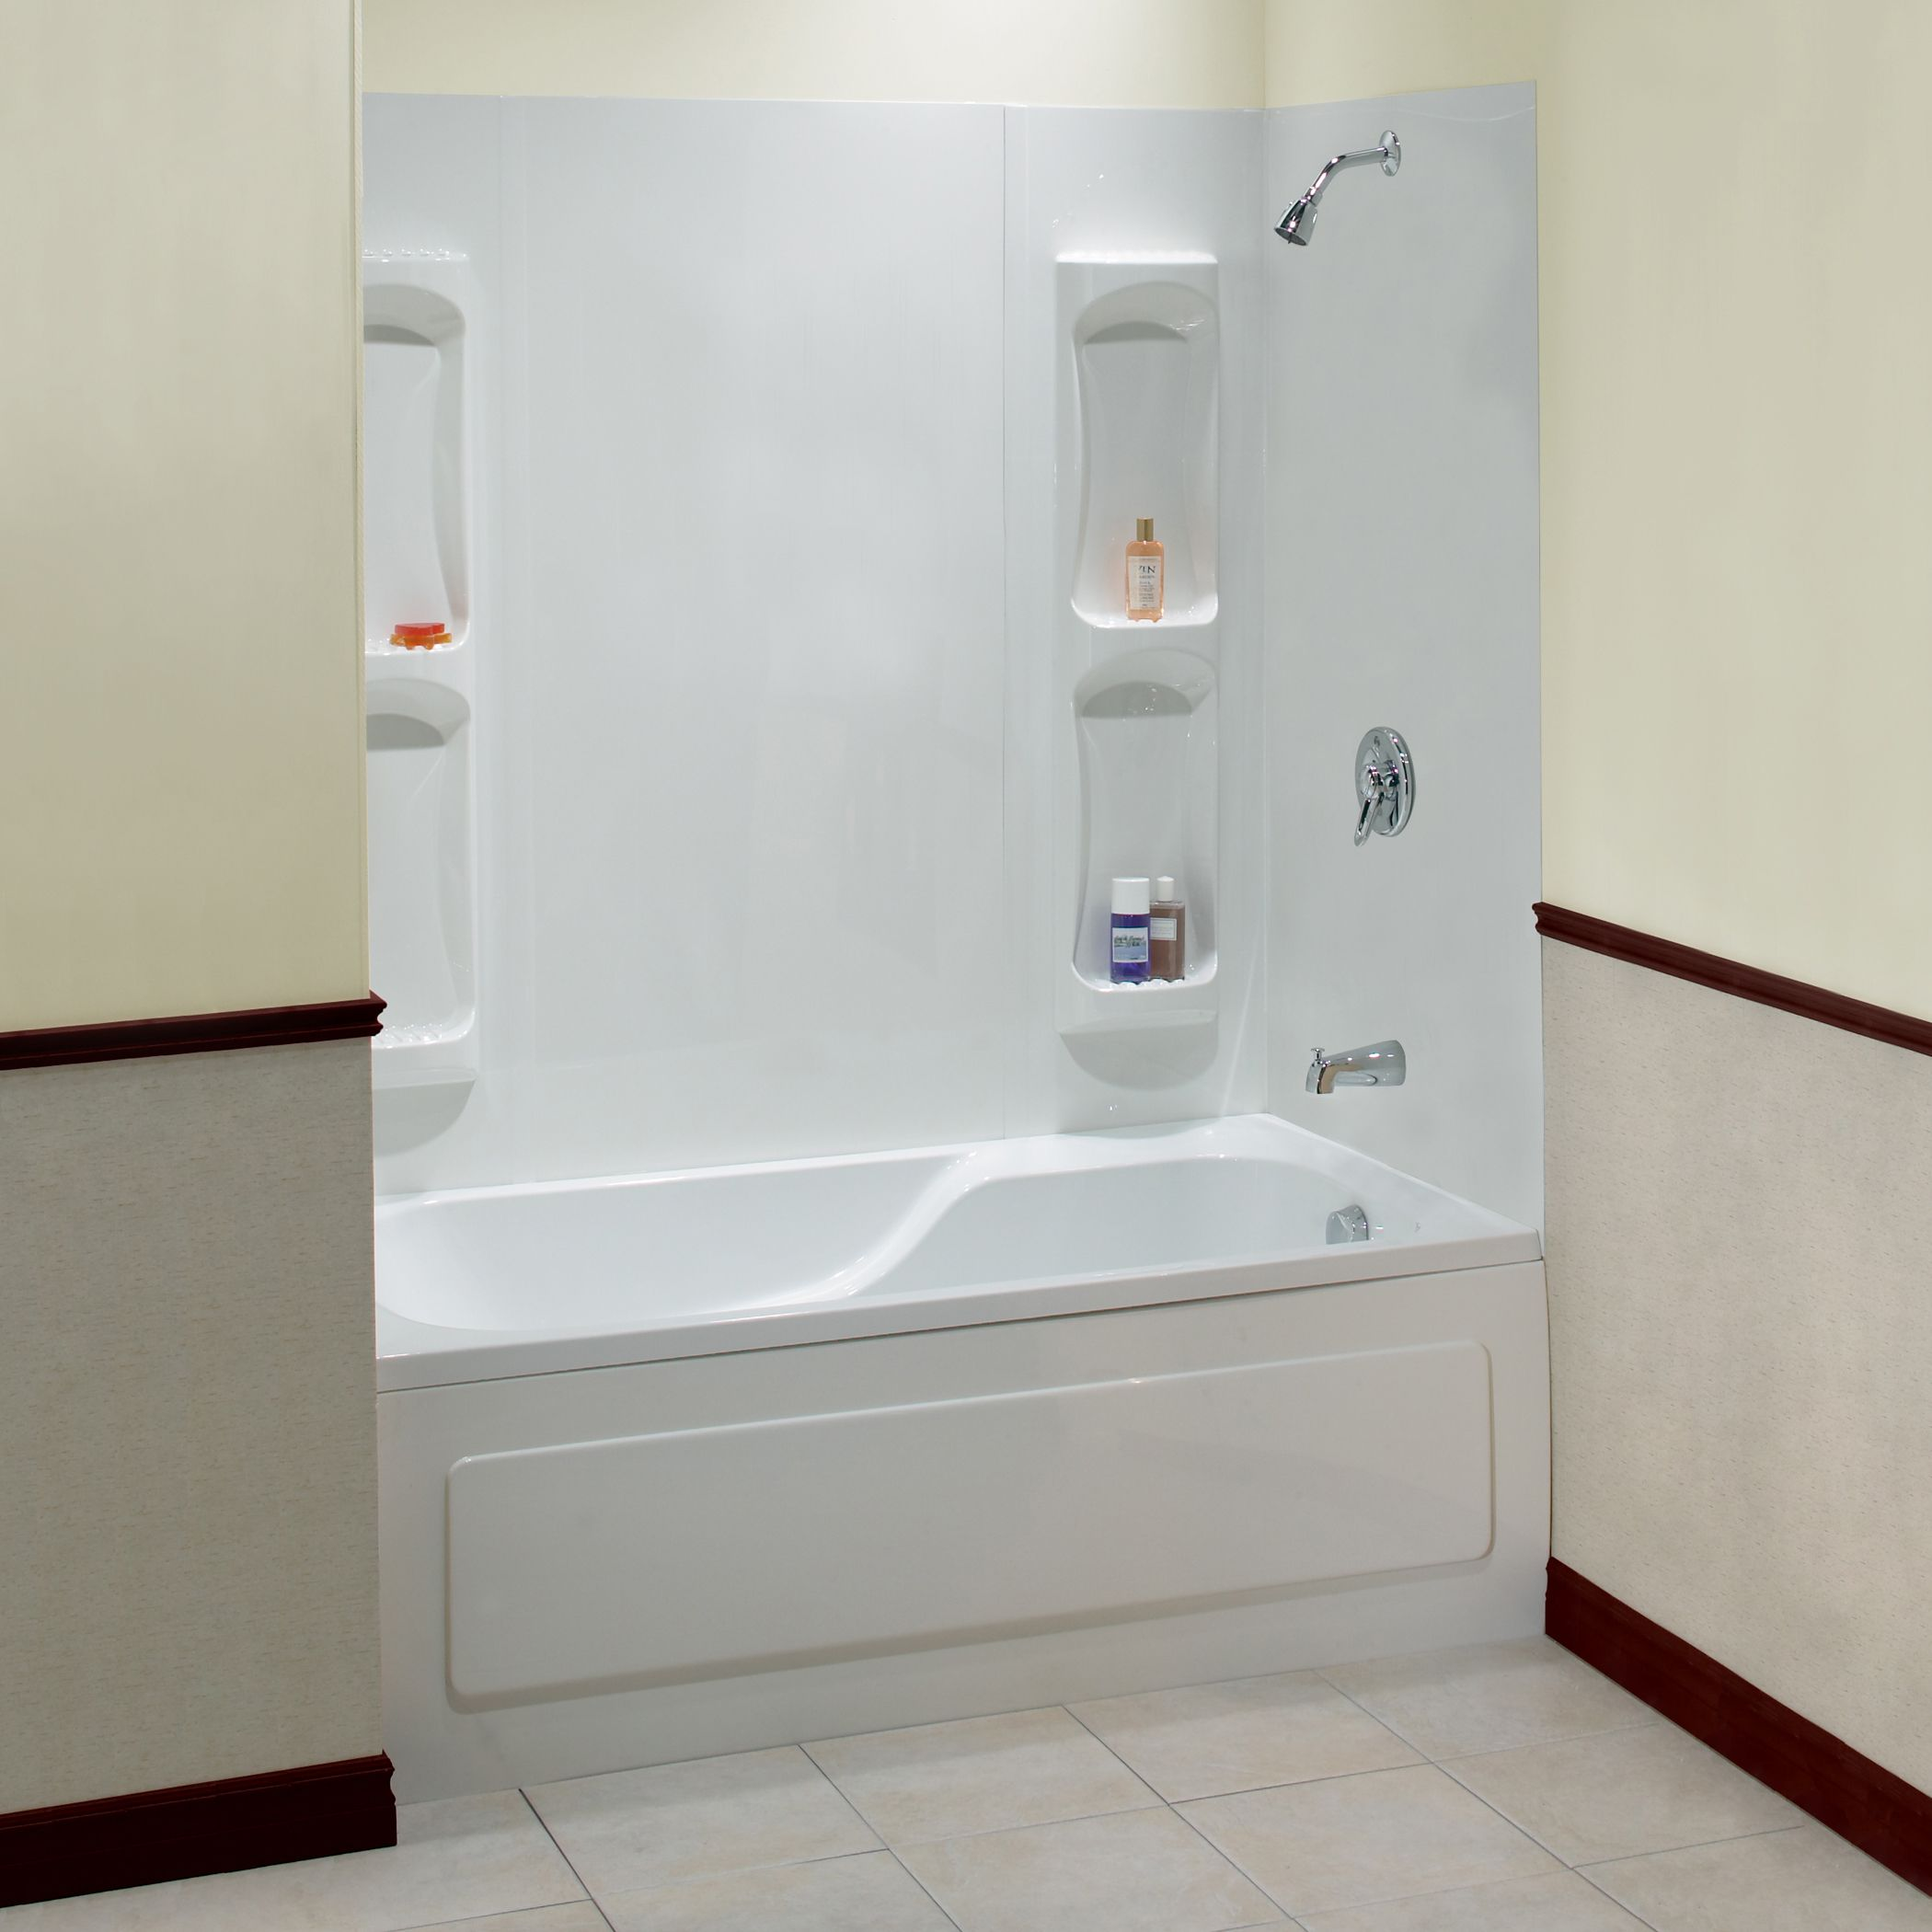 fiberglass combined set showers bathtub shower astounding pictures units combo parts install valve size beautiful of full kits and ebaytub concept surround installation tub